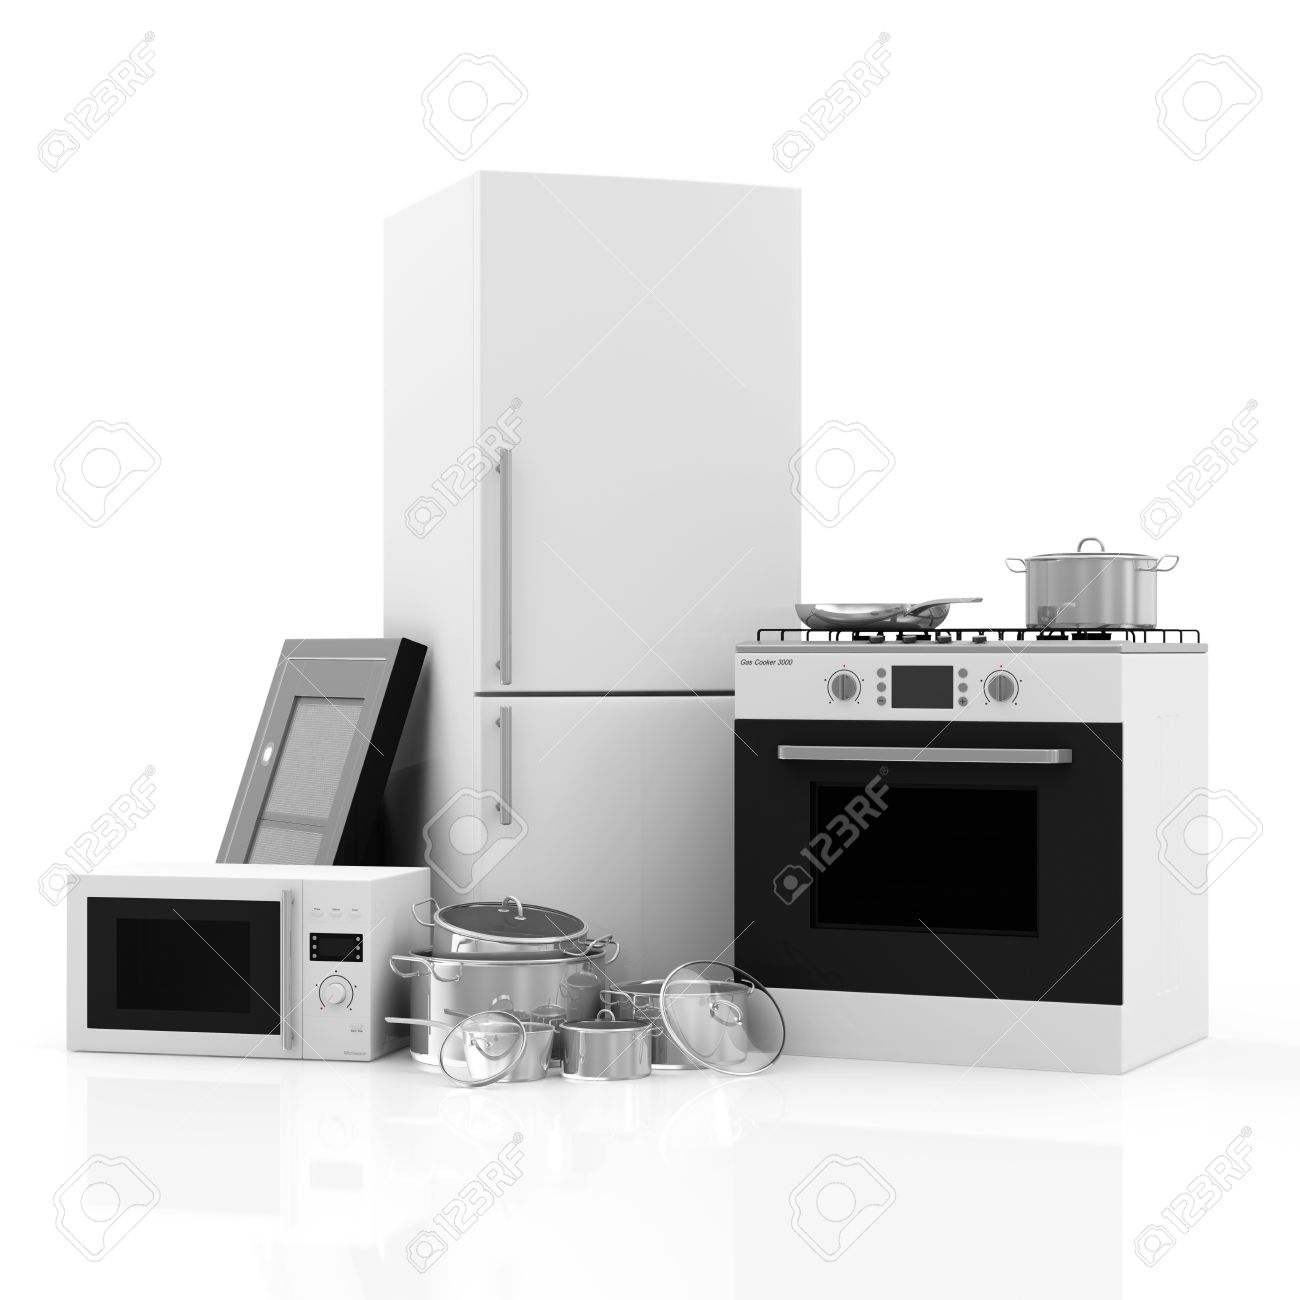 Of Kitchen Appliances Group Of Kitchen Appliances Refrigerator Gas Cooker Microwave